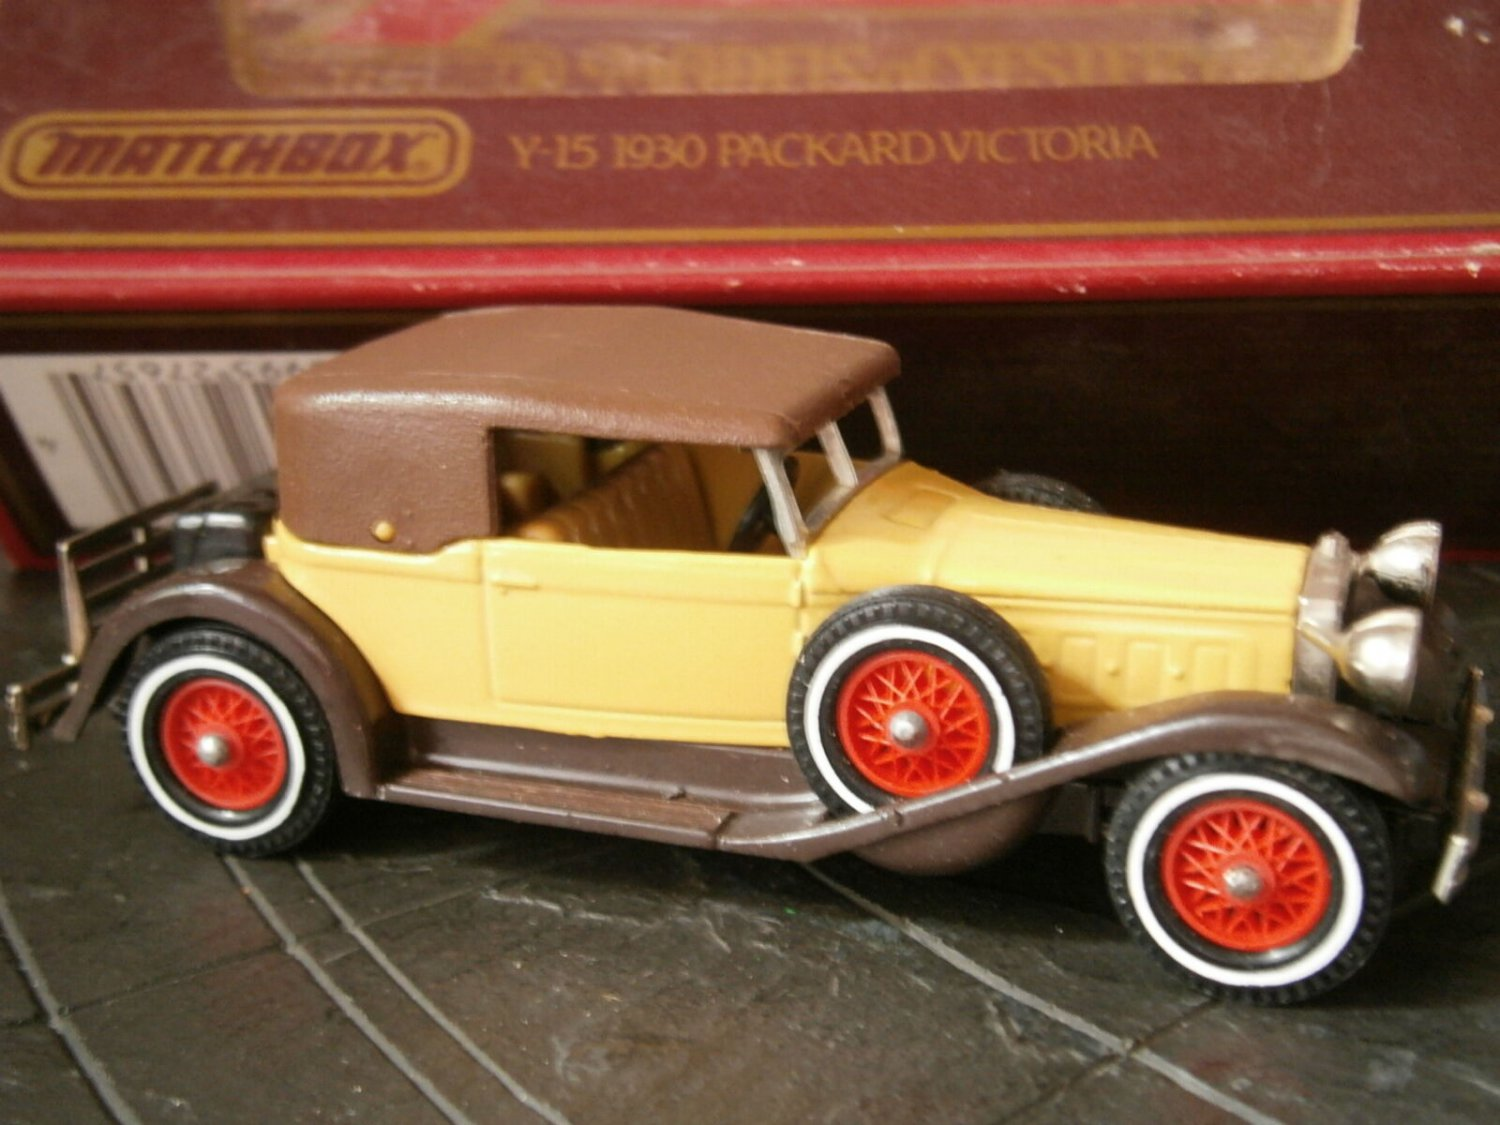 MATCHBOX AUTO Y-15 1930 Packard VICTORIA car Original Edition 1984 scale 1:46 match box